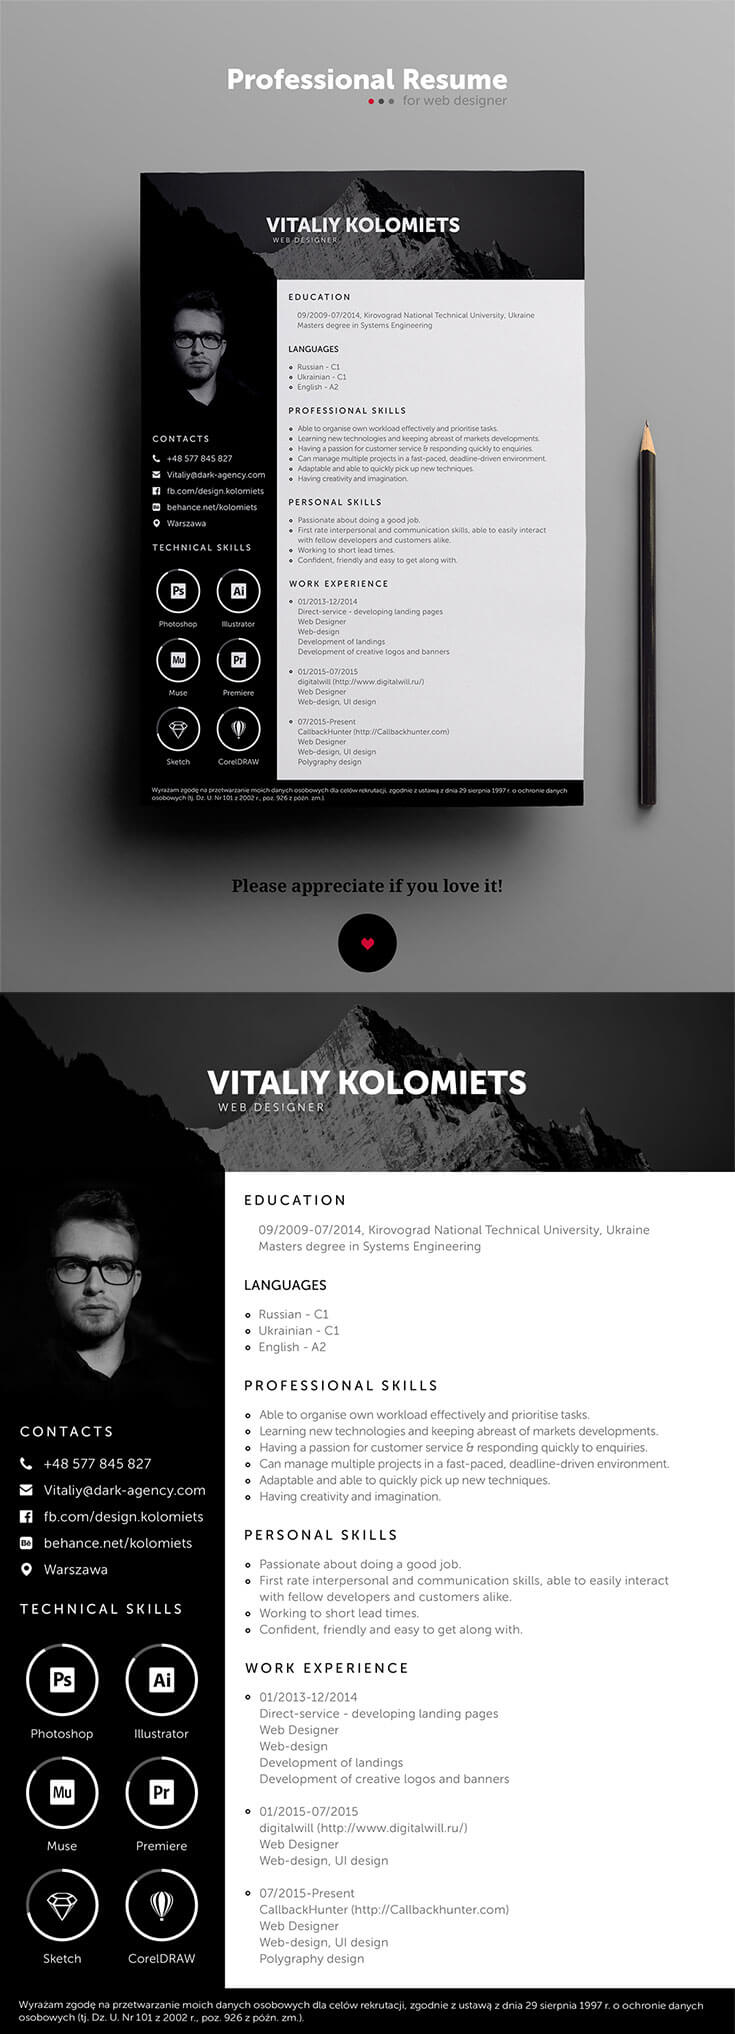 Free #Modern #Resume #Template is a professional template specially design for graphic and web designers. It is available in PSD file format. Moreover, you can change the photos, colors and other stuff according to your need. It's very helpful to make your professional resume and are perfect for designers, photographers, and developers.